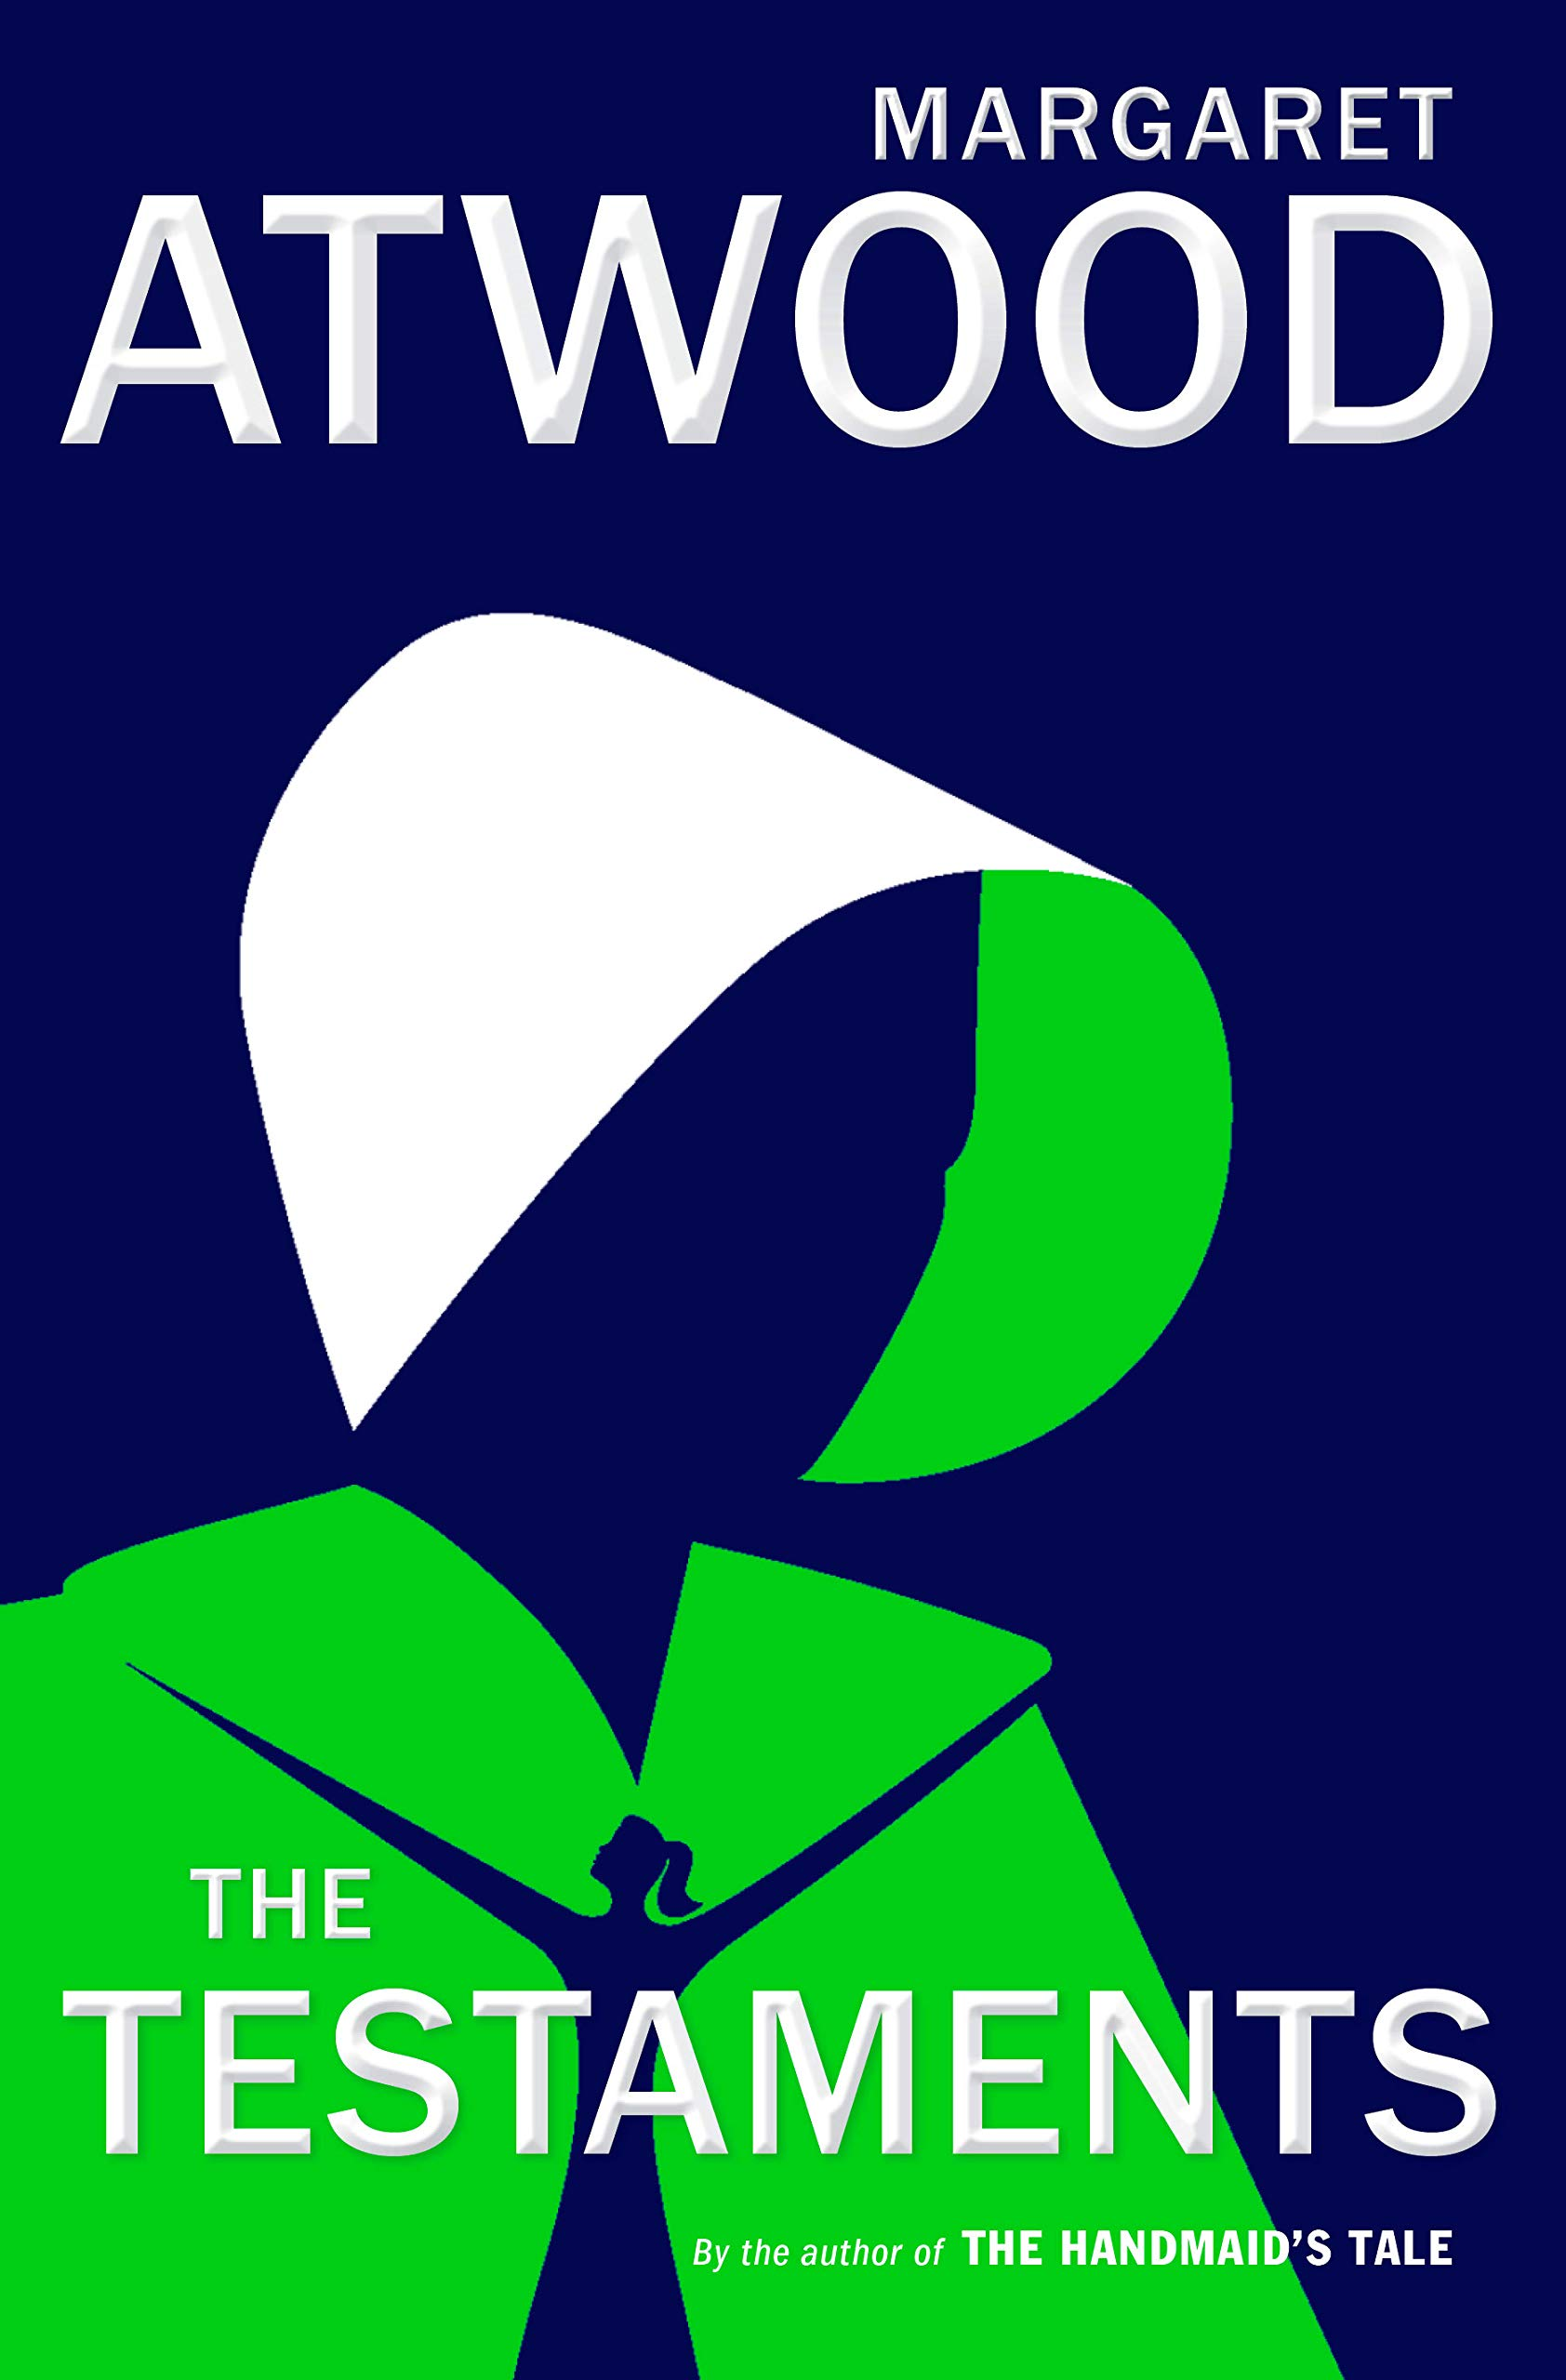 The Testaments by Margaret Atwood is one of the new books from your favorite authors we found for our Fall Fiction Preview September 2019